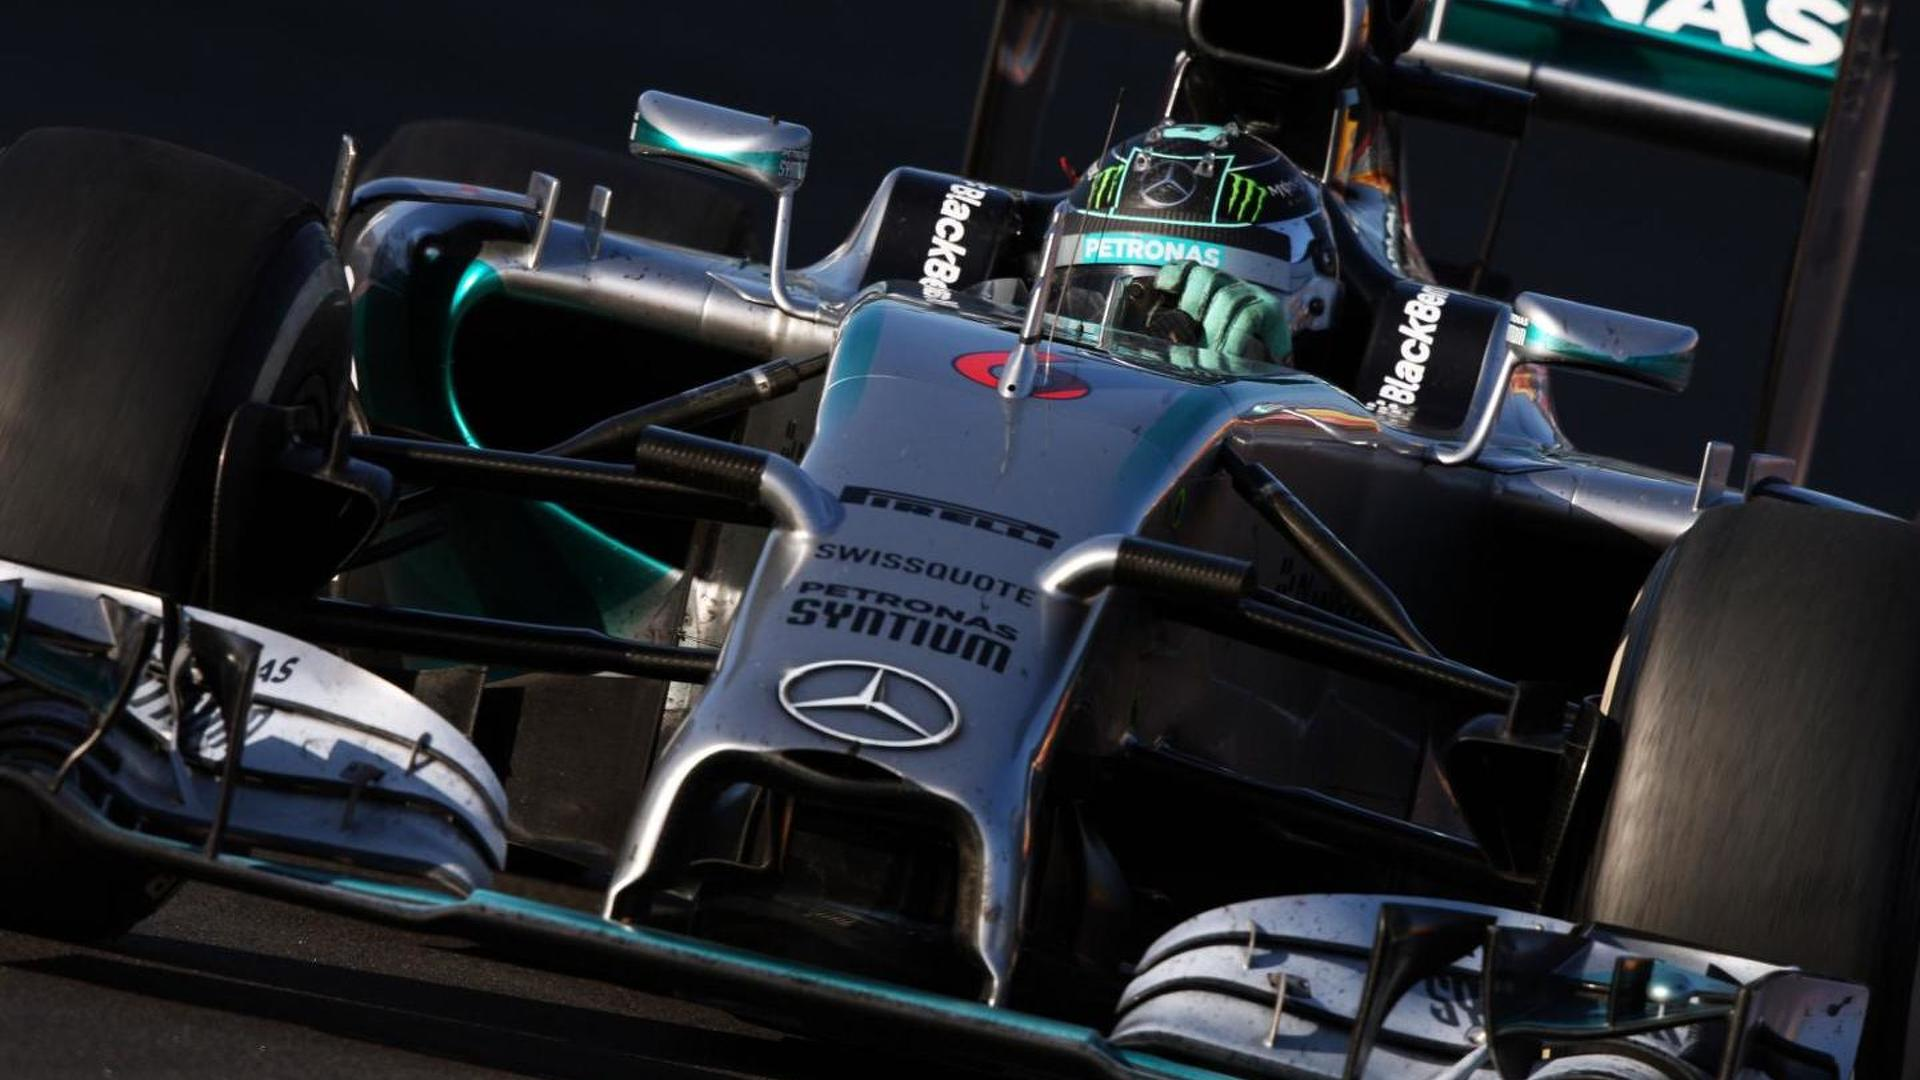 Rosberg missing aggression for 2014 'combat' - pundits